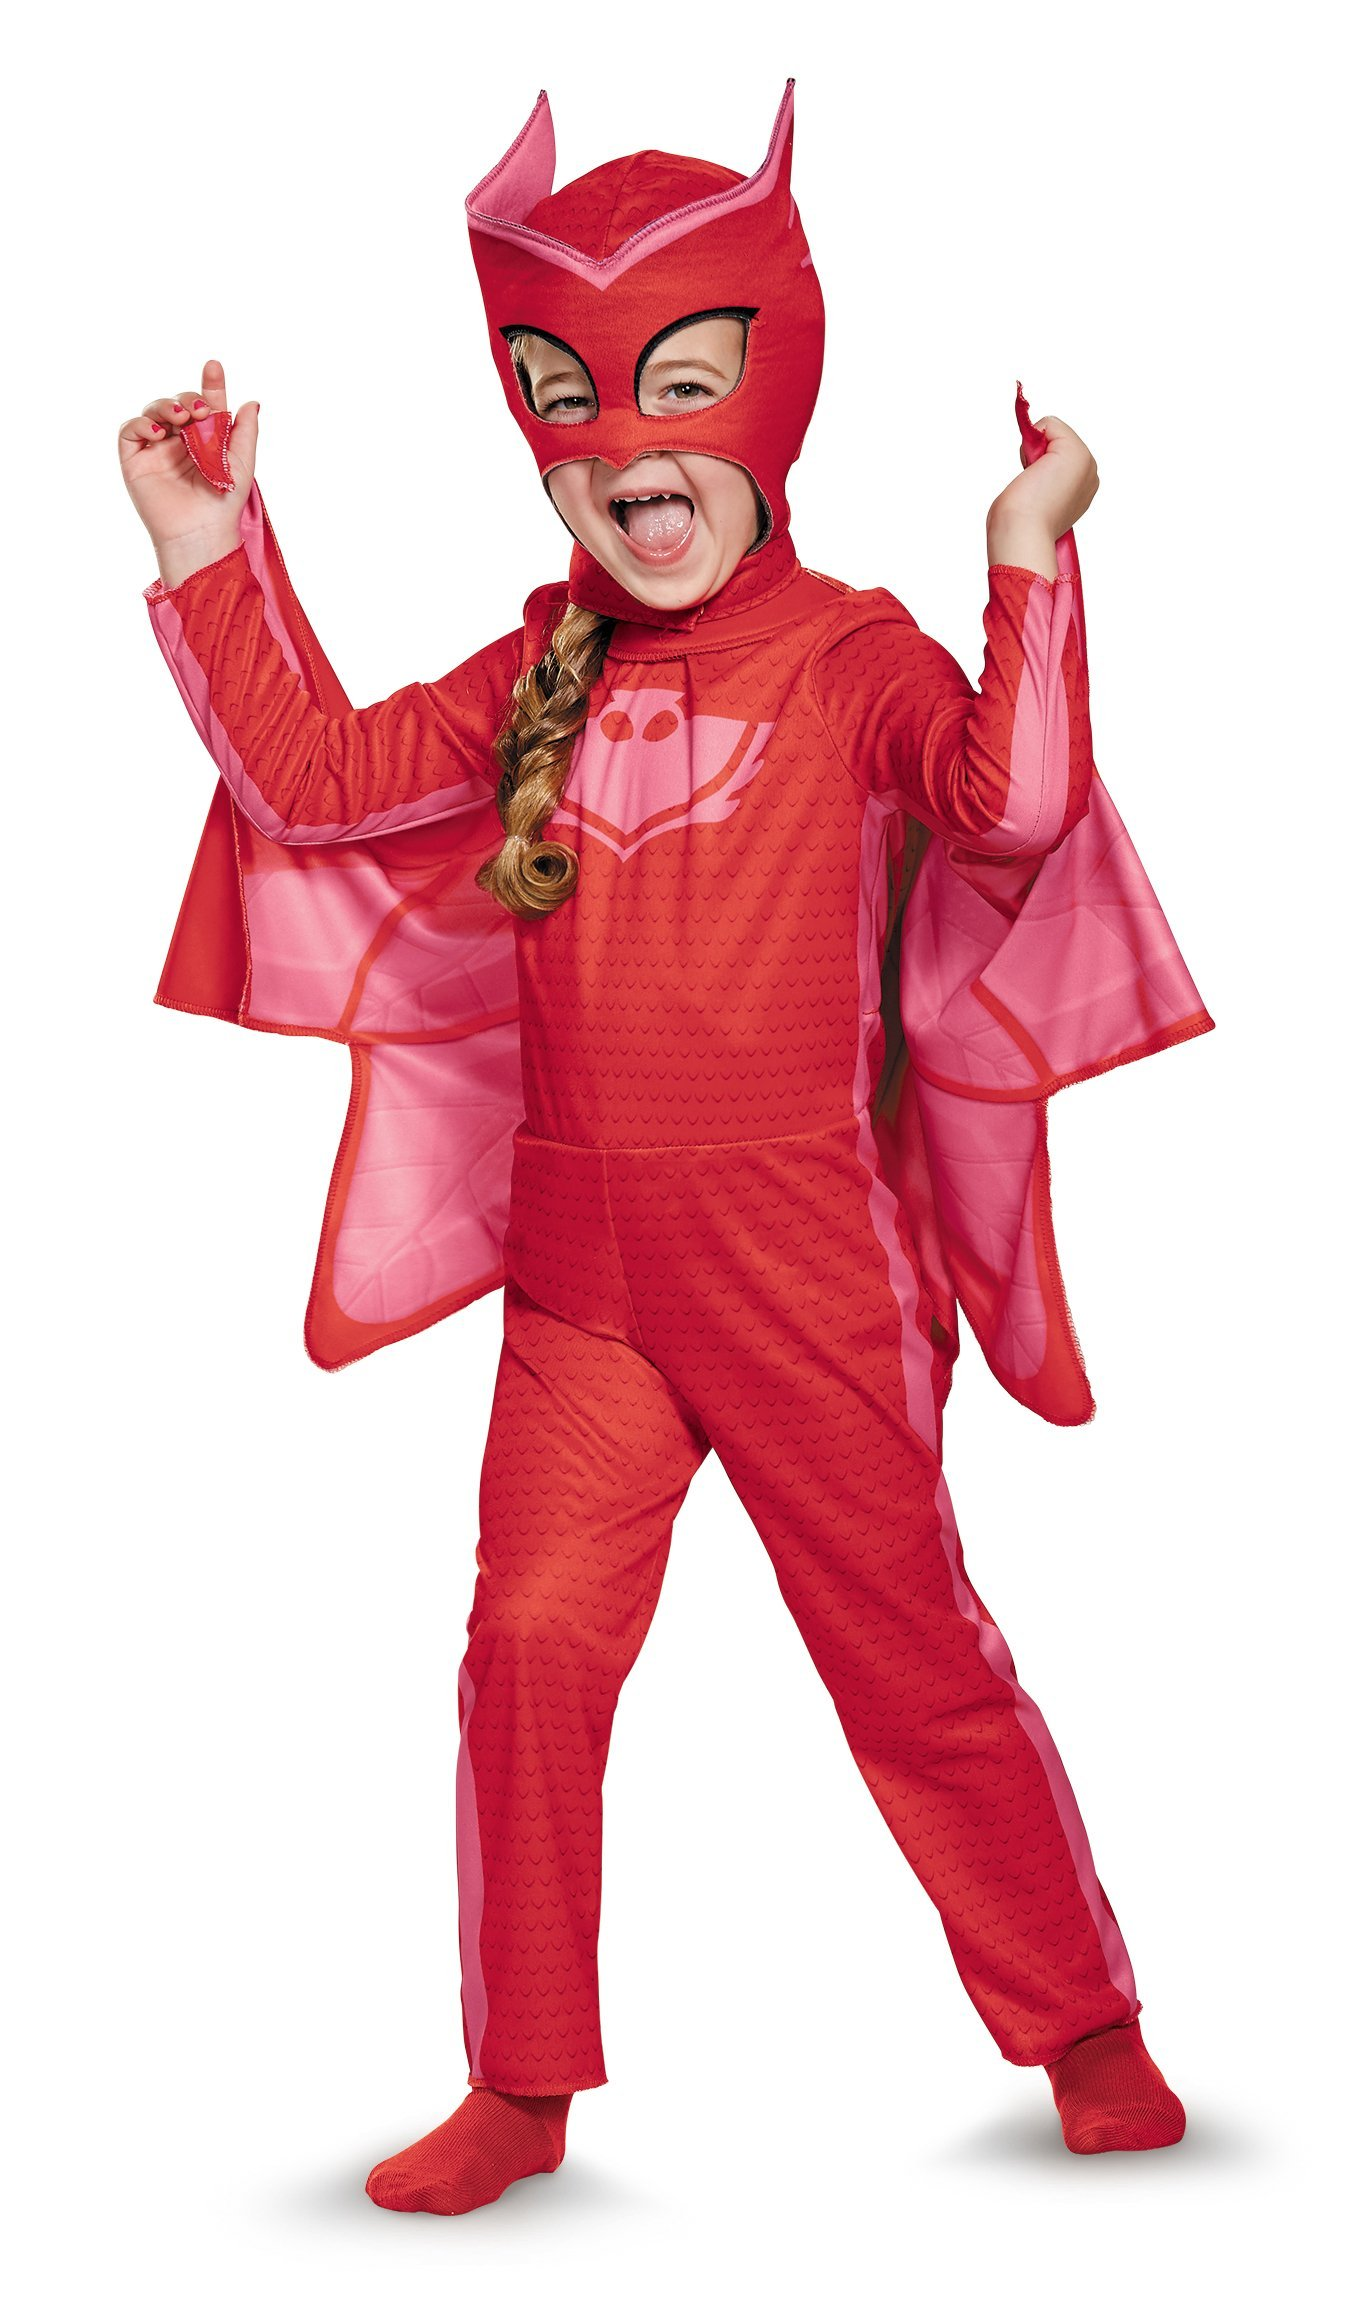 Disguise Owlette Classic Toddler PJ Masks Costume, Large/4-6X